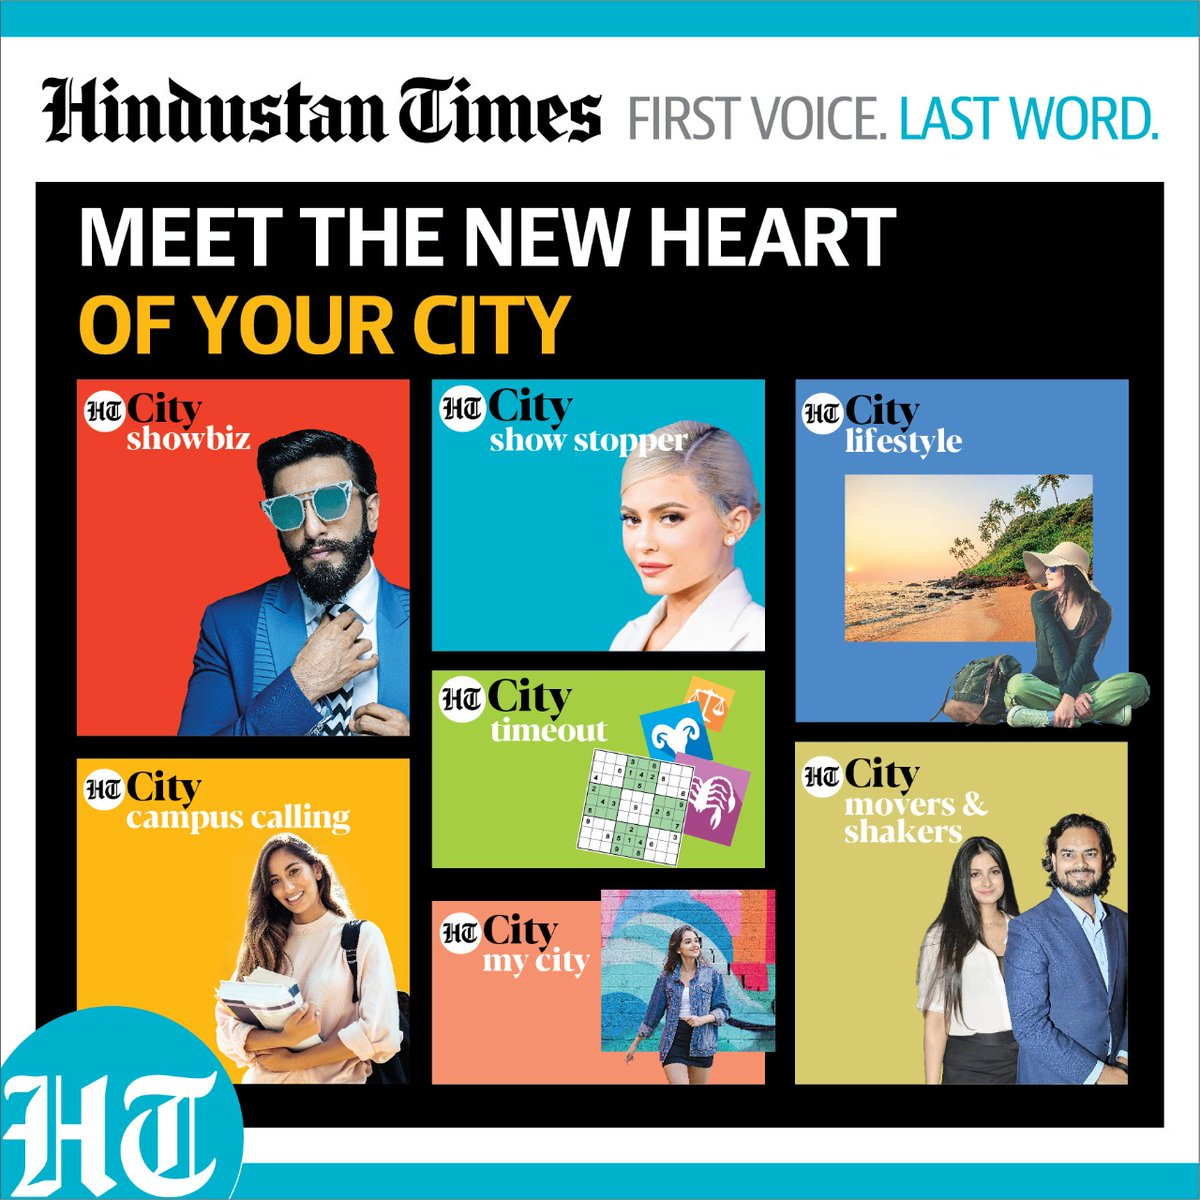 The all-new #HTCity is here! Your one stop destination for everything entertainment & Lifestyle!   Now Experience, Engage & Express with the All-New HTCity.  Subscribe to the #allnewHT https://t.co/TJyijJXge4 #HTfirstvoicelastword  @htTweets https://t.co/Iqz5W6j8lx